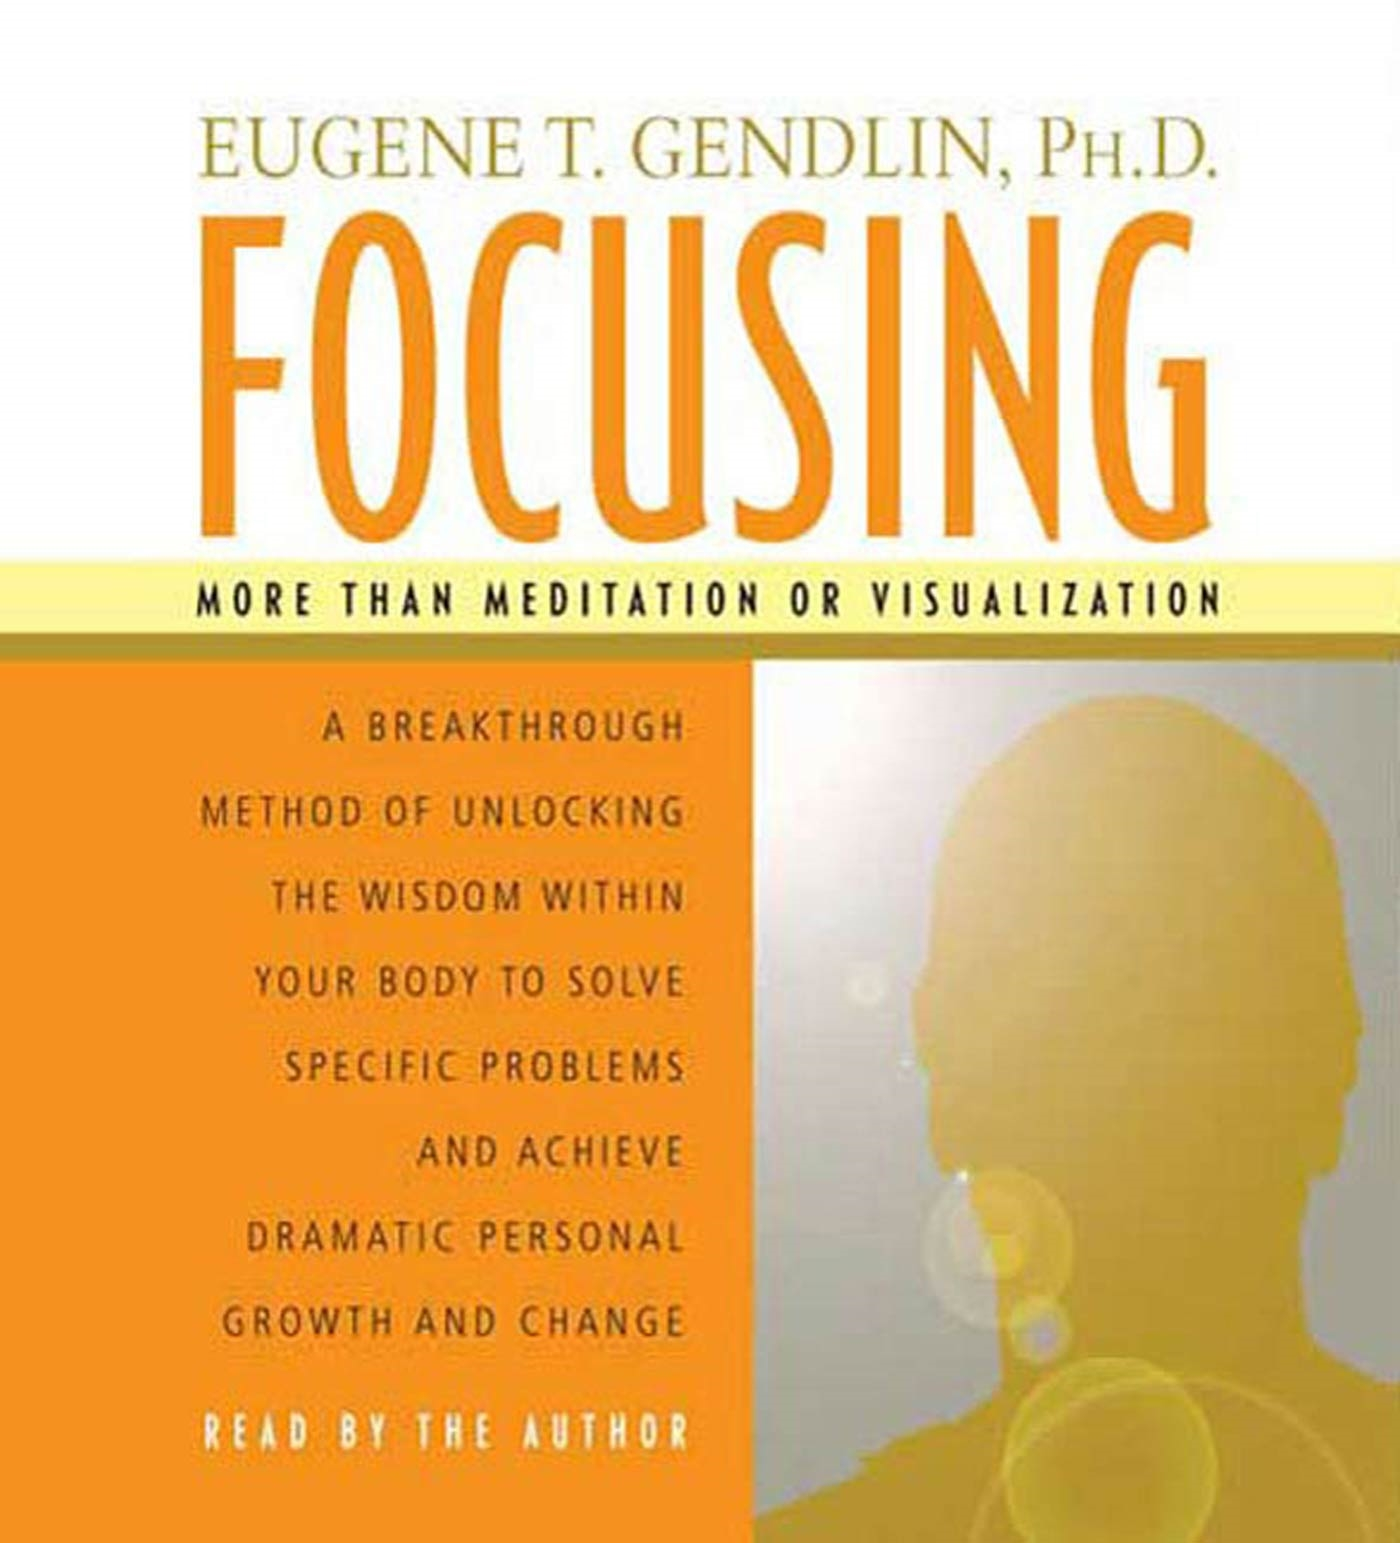 Focusing : A Breakthrough Method of Unlocking the Wisdom Within Your Body to Solve Specific Problems and Achieve Dramatic Personal Growth and Change